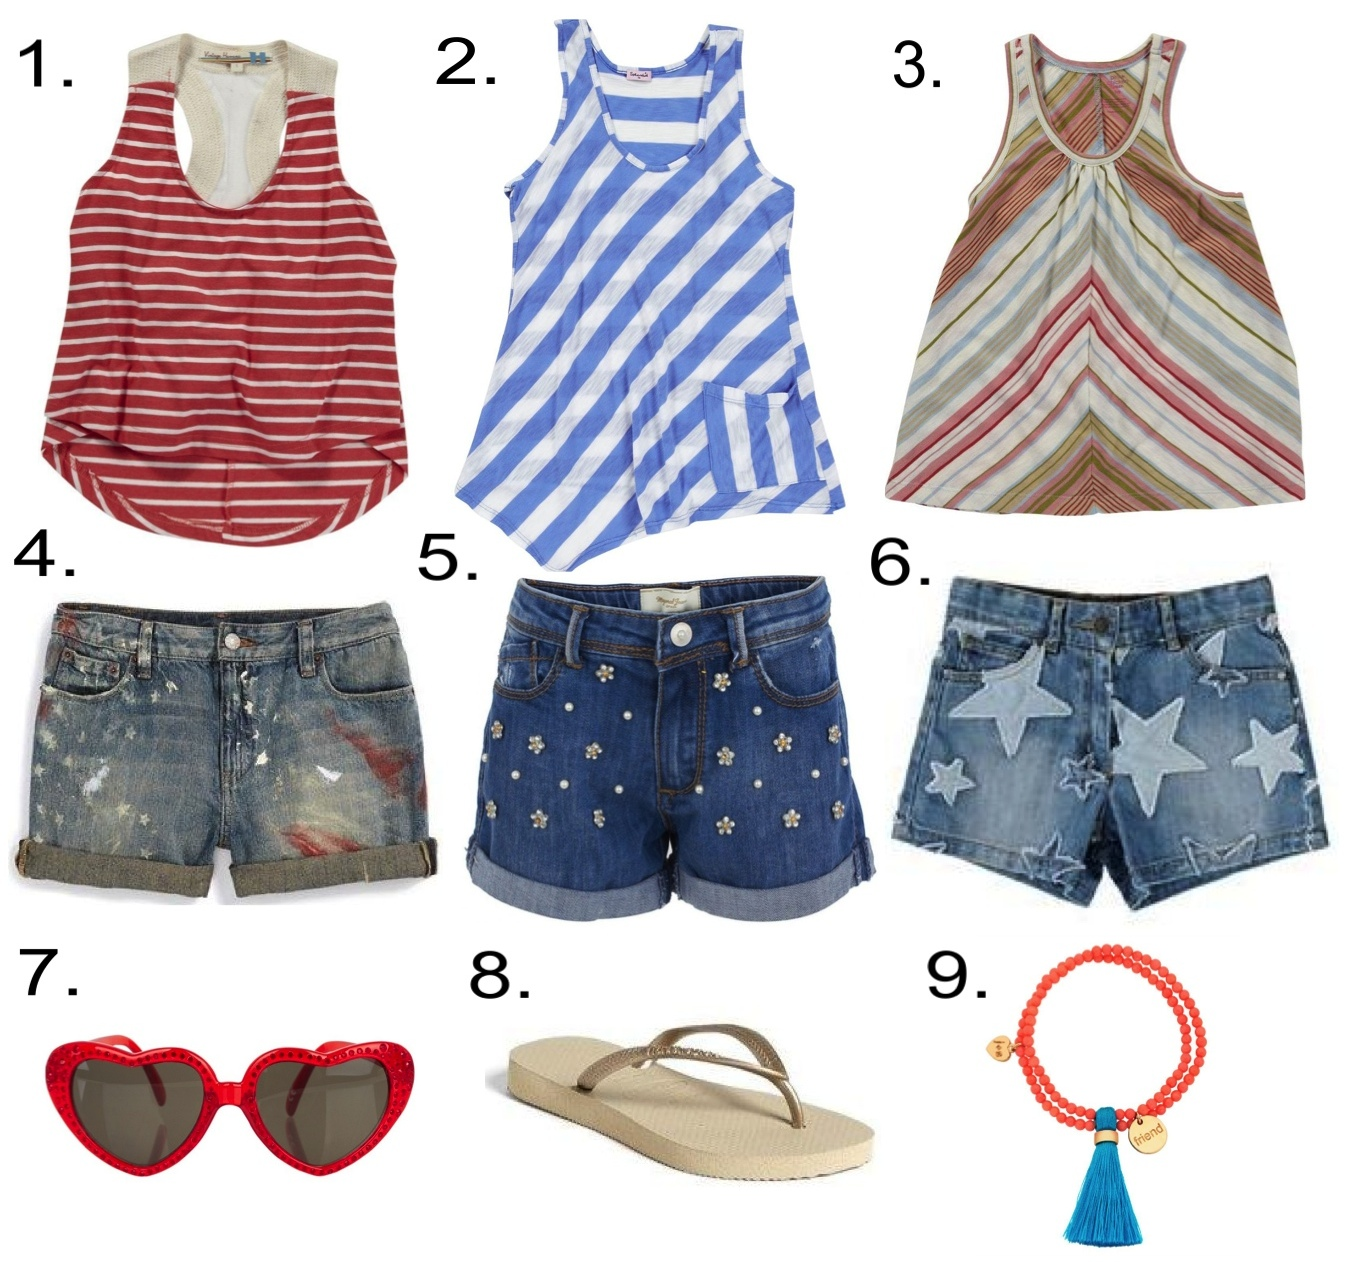 Girls Striped Tank Tops, Denim Shorts and Summer Accessories 1.  Vintage Havana Chiffon Tank  2.  Splendid Rugby Stripe Tank  3.  Pink Chicken Kyle Top  4.  Ralph Lauren Boyfriend Shorts   5.  Mayoral Denim Pearl And Diamante Shorts  6.  Stella McCartney Kids Star Embroidered Denim Shorts  7.  Monnalisa Red Diamante Heart Sunglasses  8.  Havaianas 'Slim' Flip Flop  9.  Jacques + Sienna Friend Bracelet